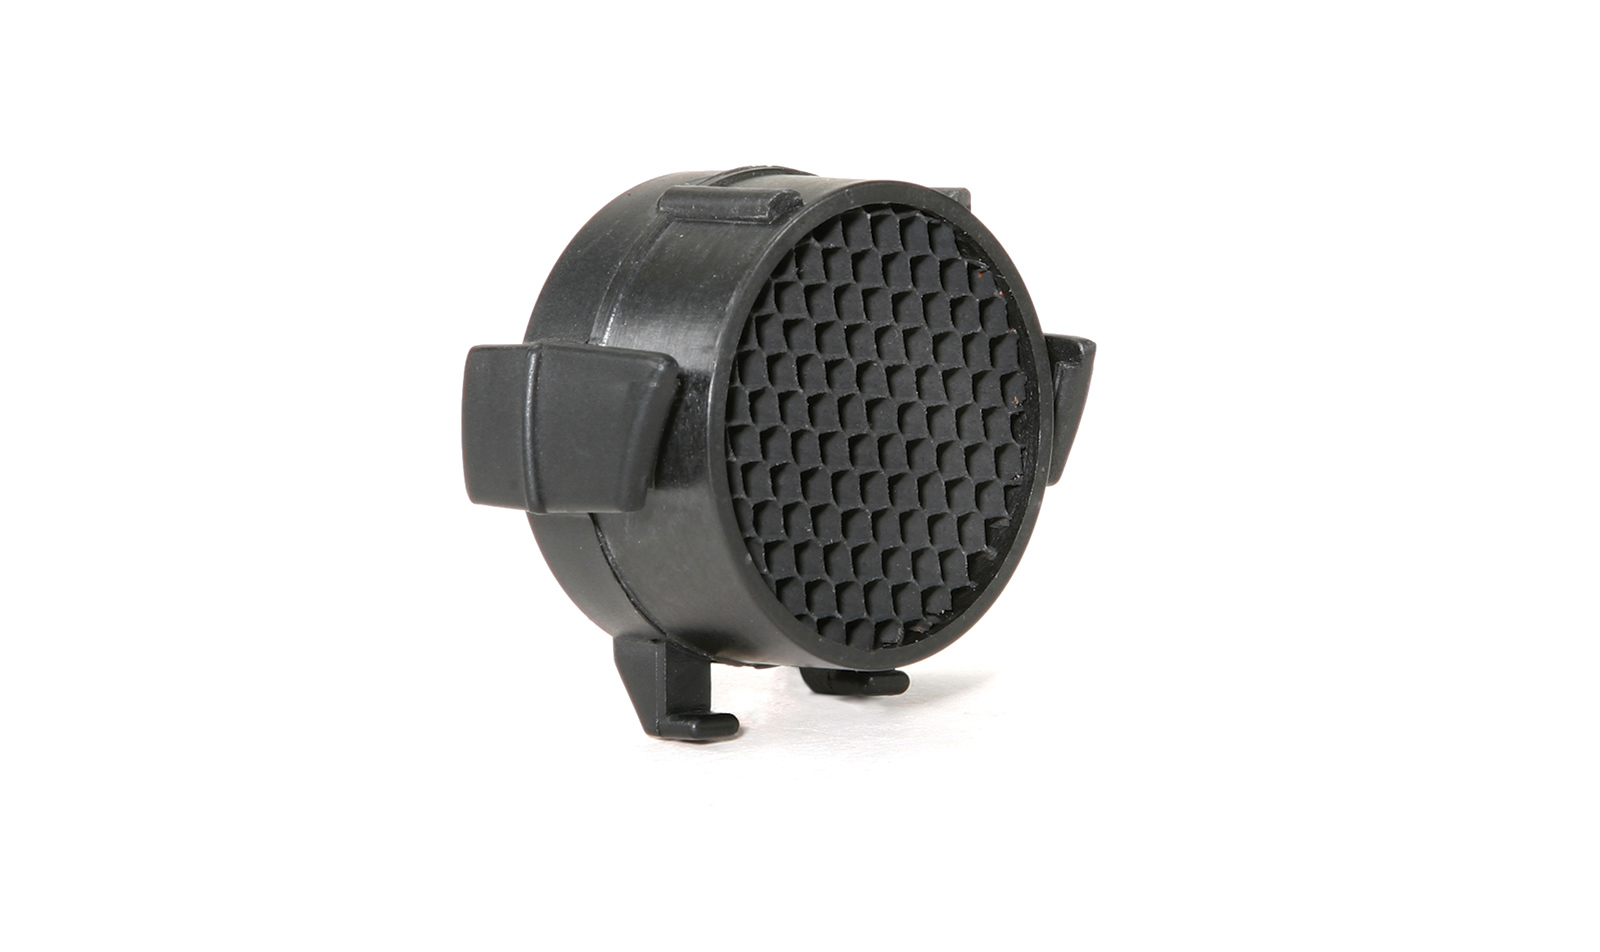 Tenebraex killFLASH® Anti-Reflection Device for 3.5x35 ACOG®